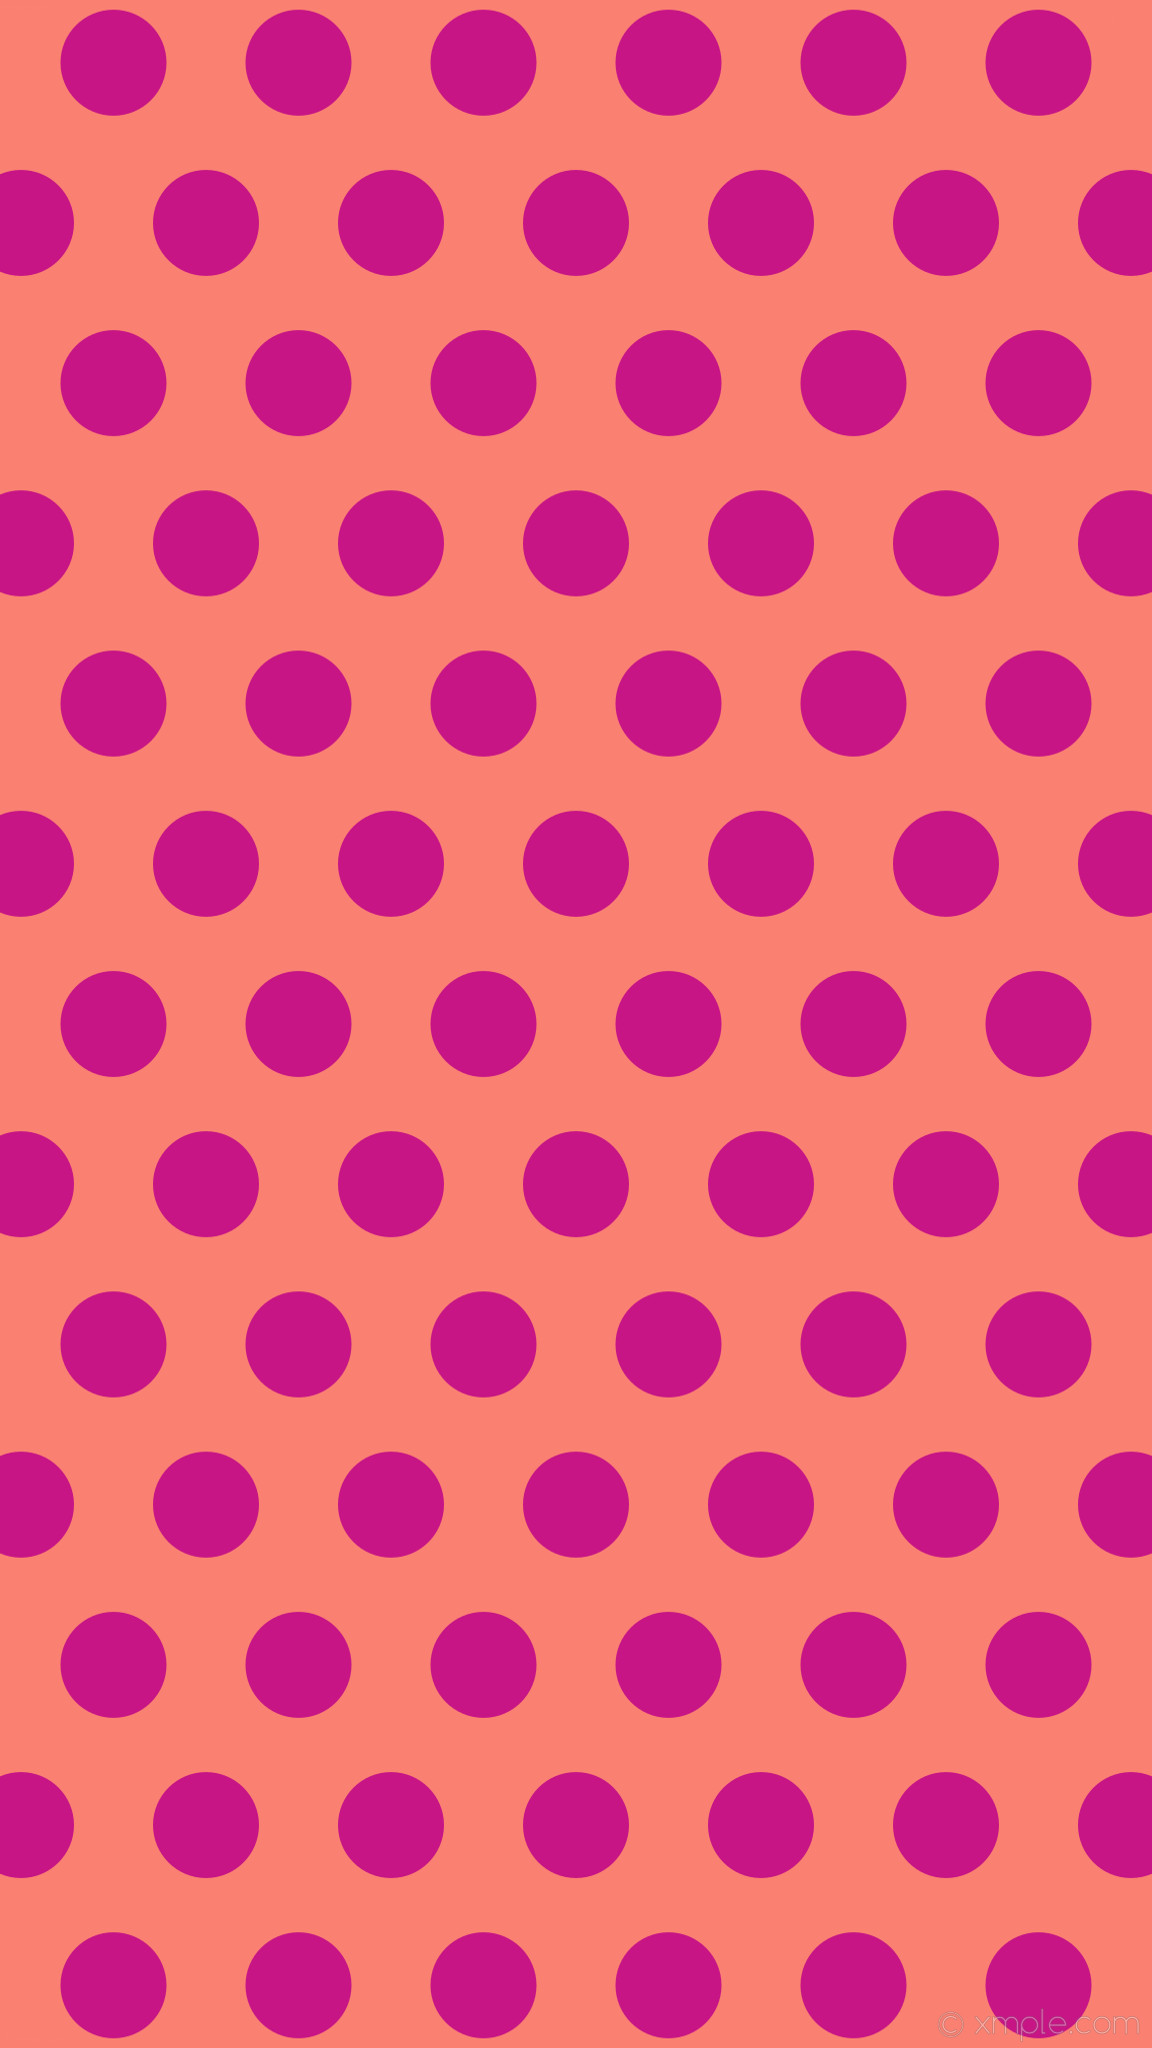 1152x2048 wallpaper pink polka dots red hexagon salmon medium violet red #fa8072  #c71585 0°